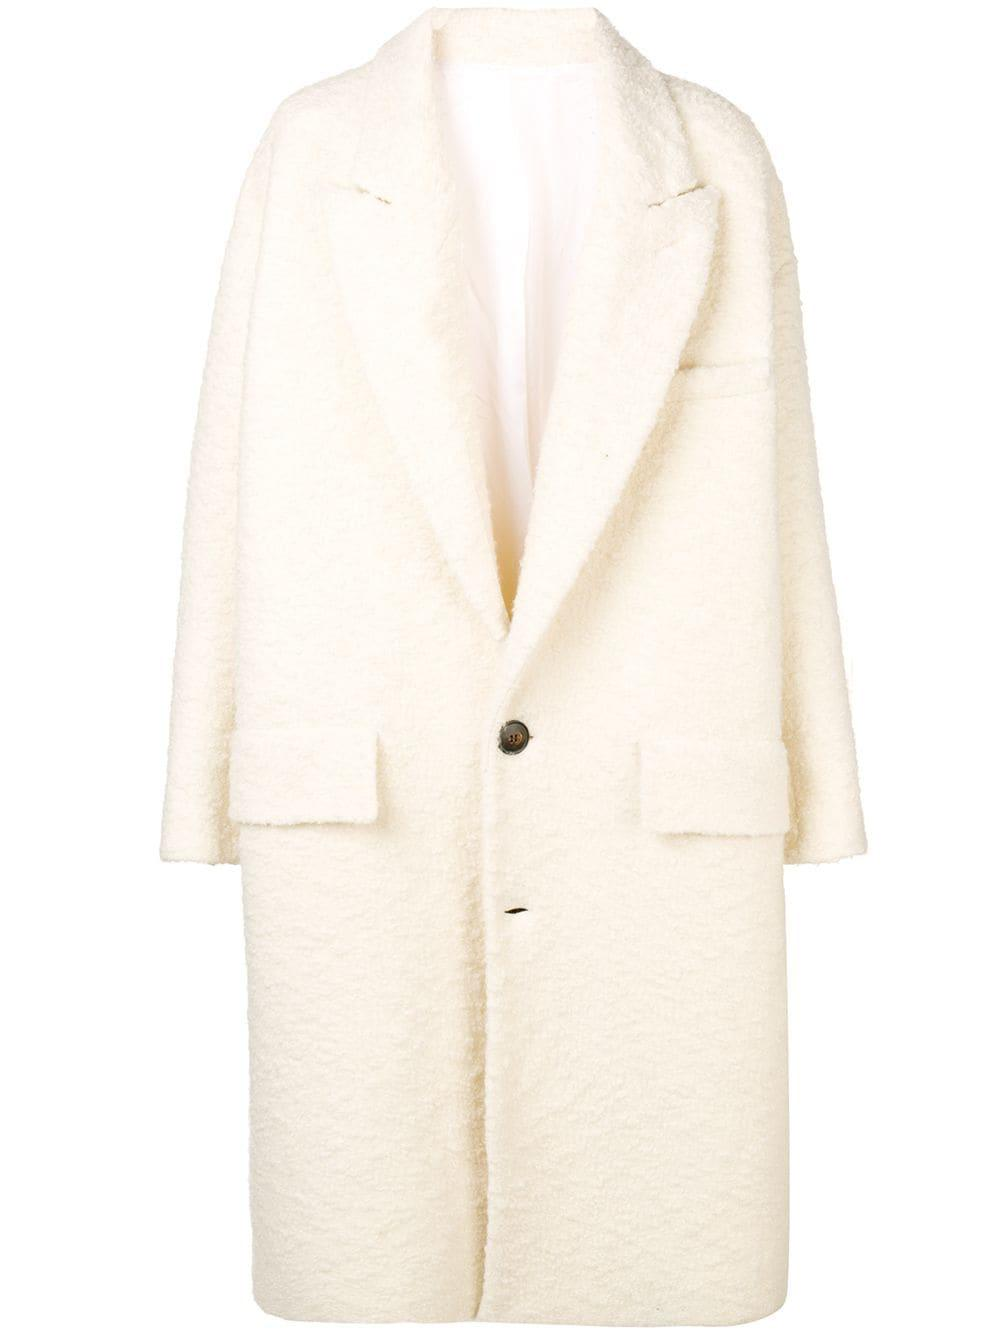 AMI Paris Oversize Coat